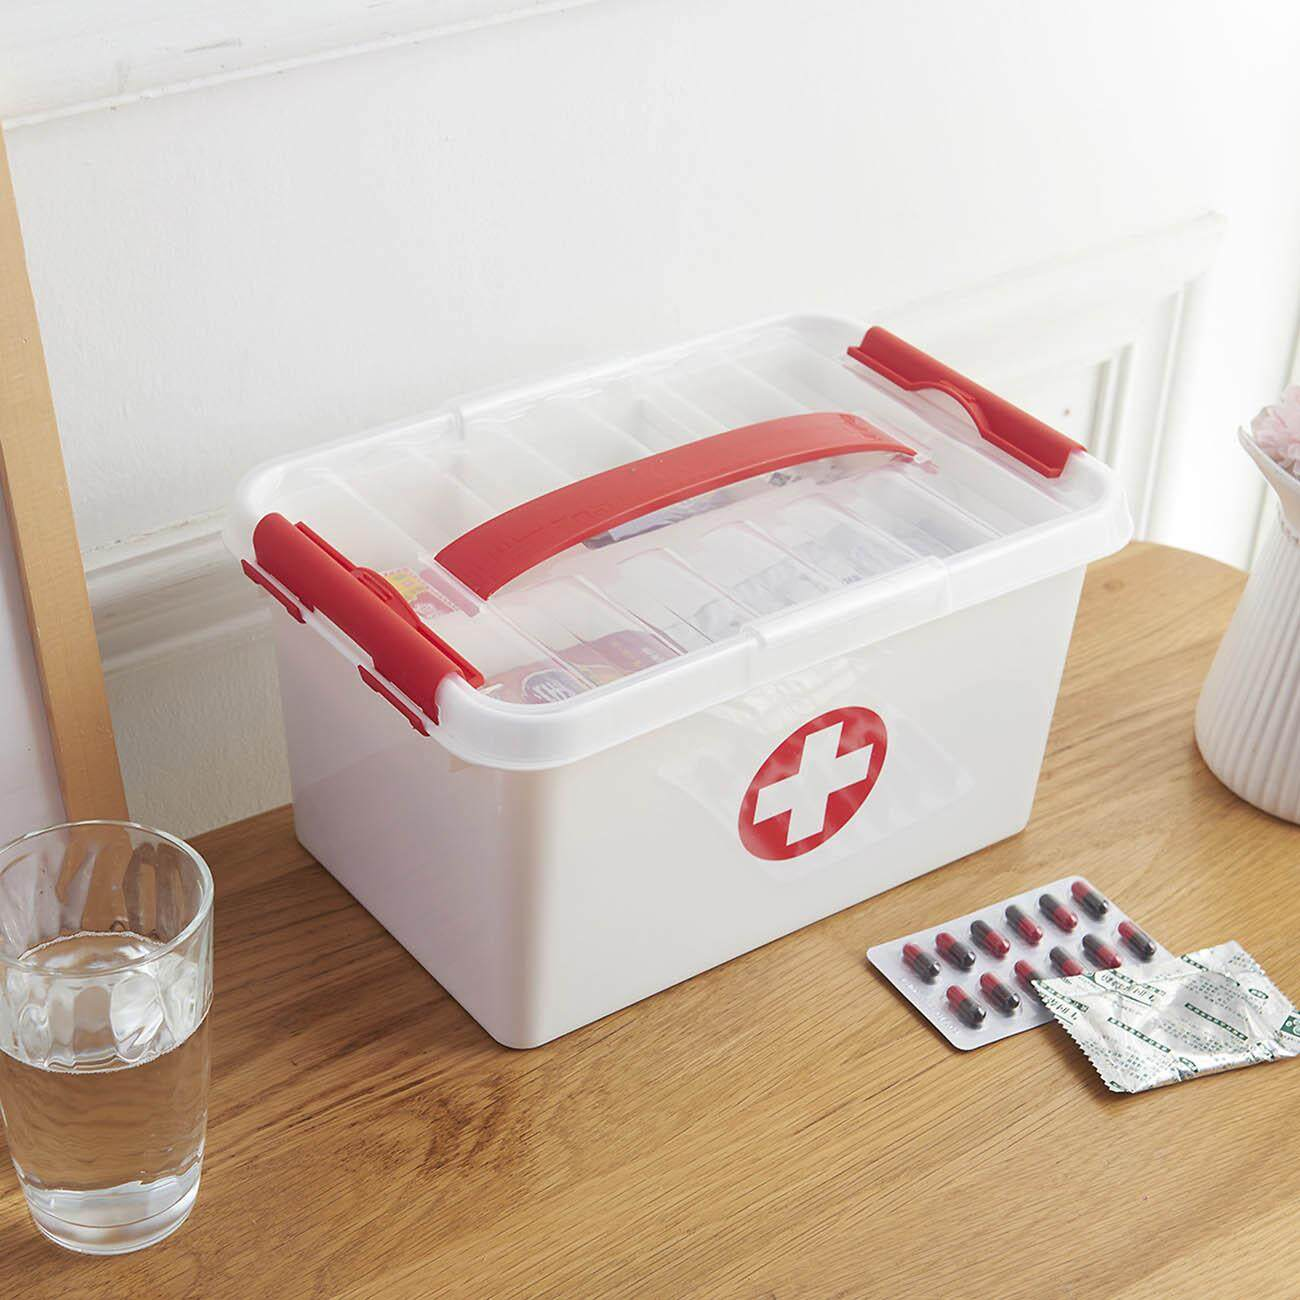 Homenhome Portable Double Layers Medicine Cabinet Household First Aid Kit Medical Box